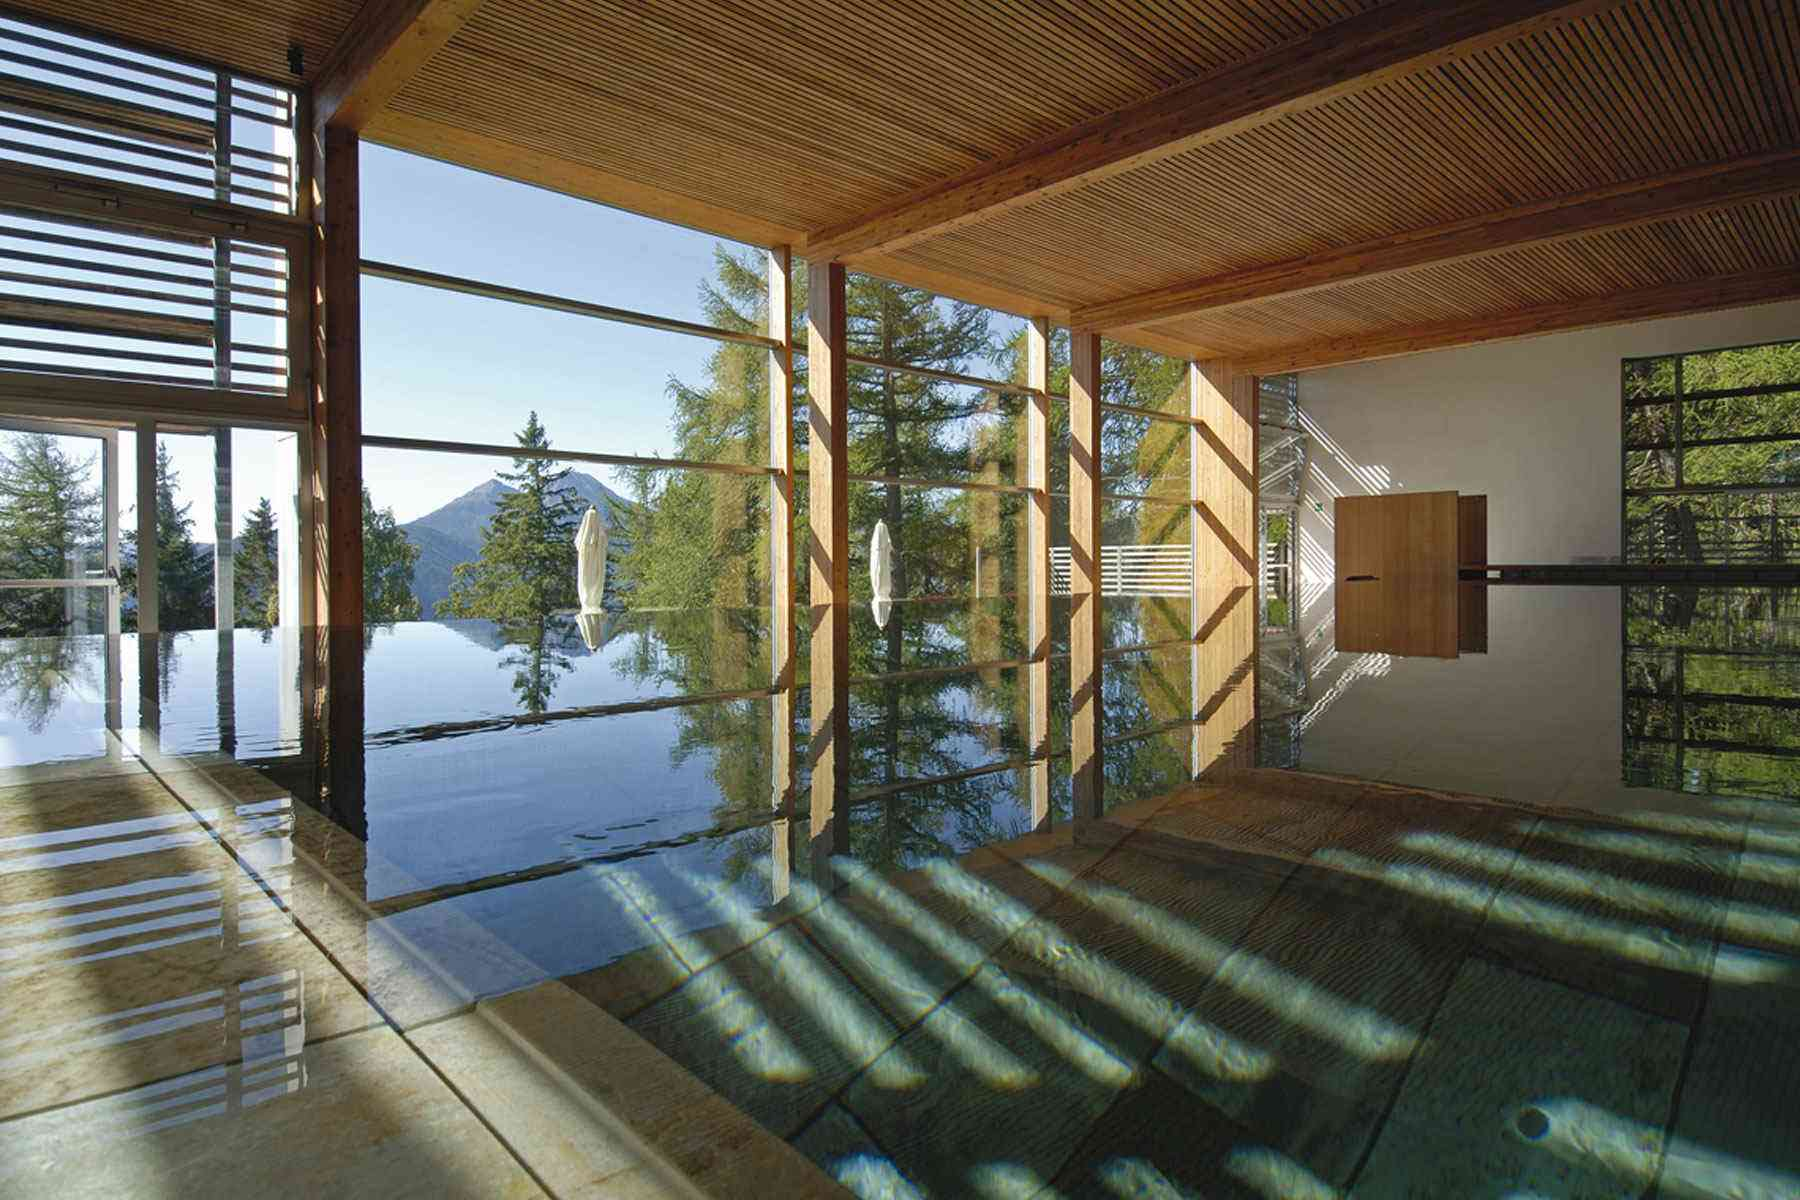 world's 15 most stunning mountaintop hotels – fodors travel guide